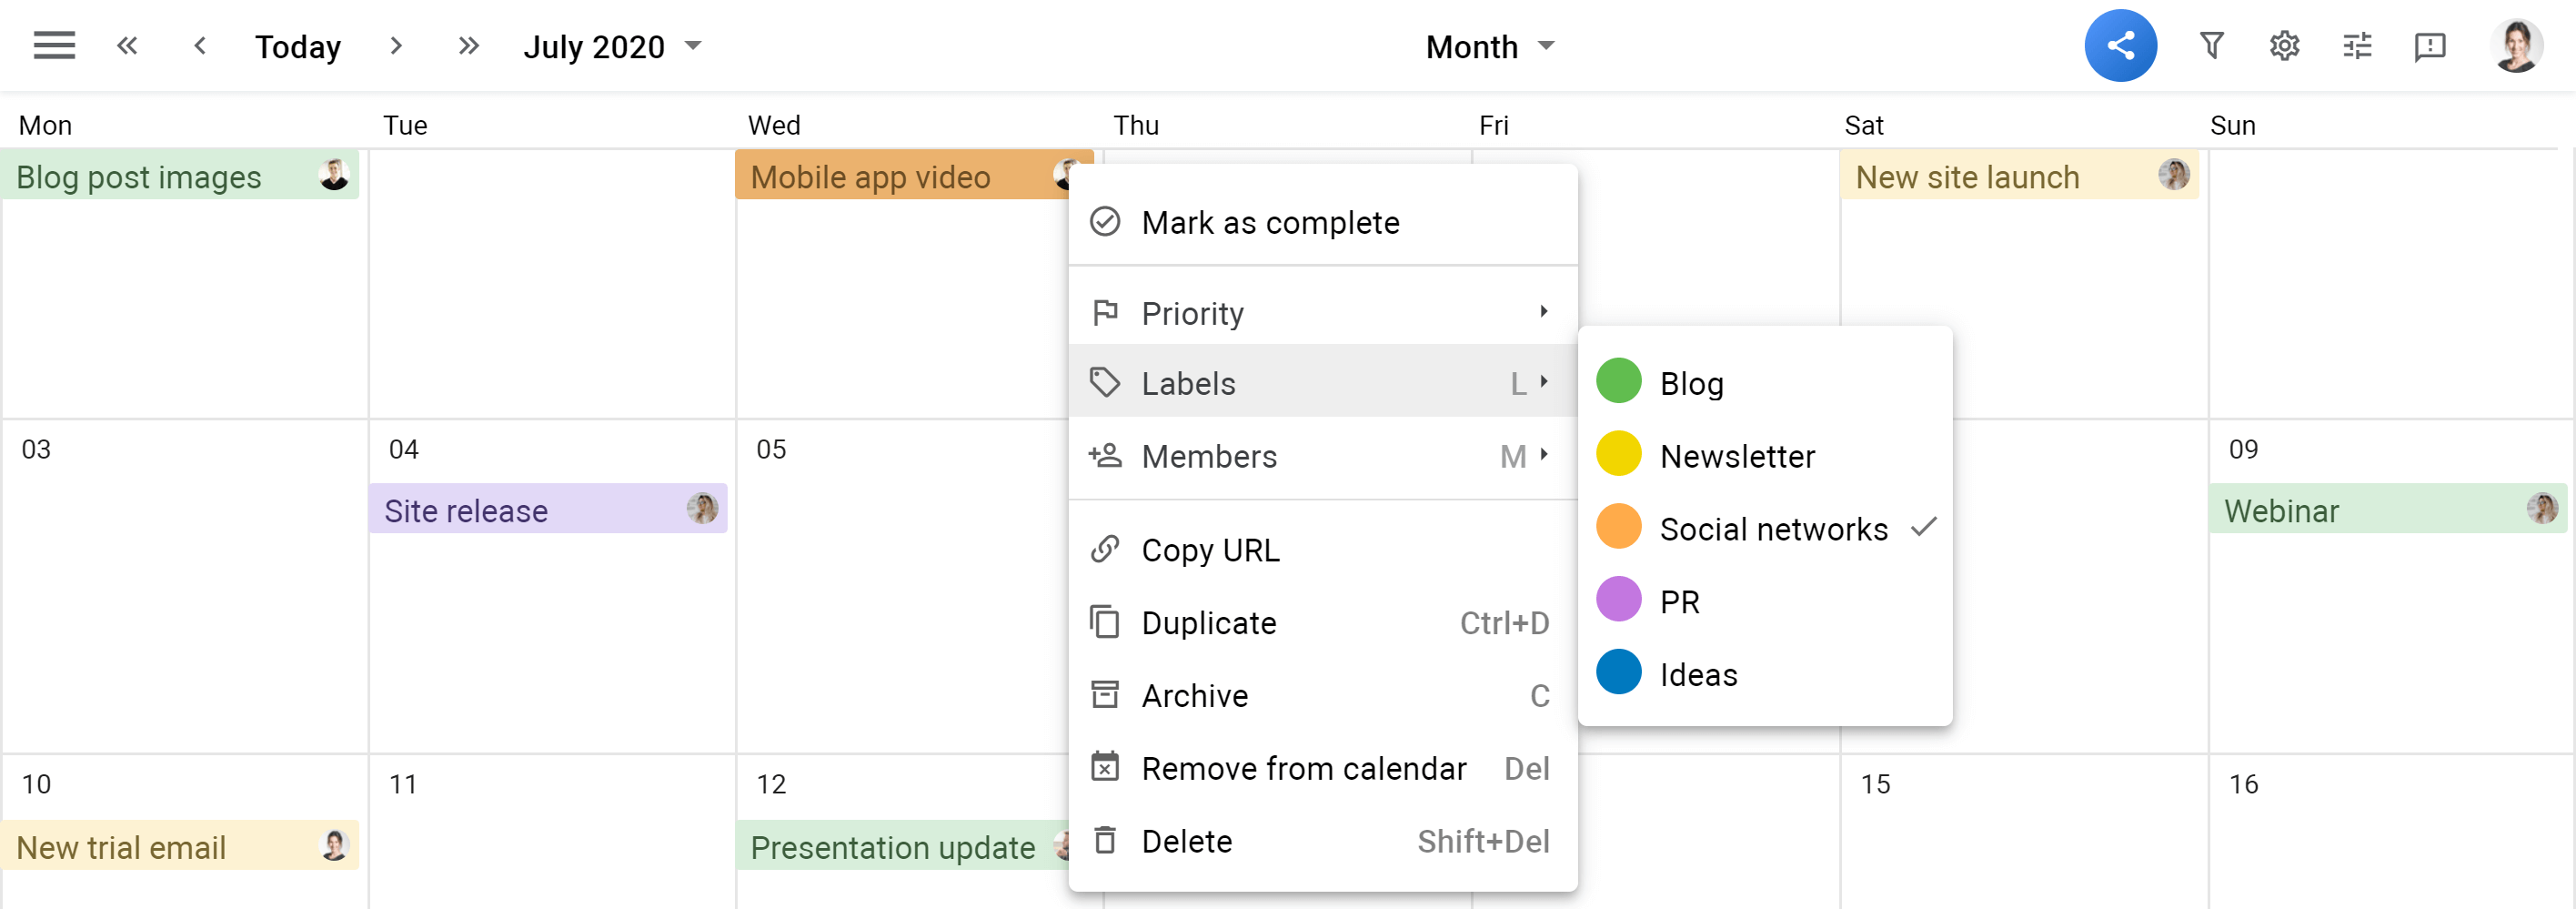 Planyway Calendar view color lables